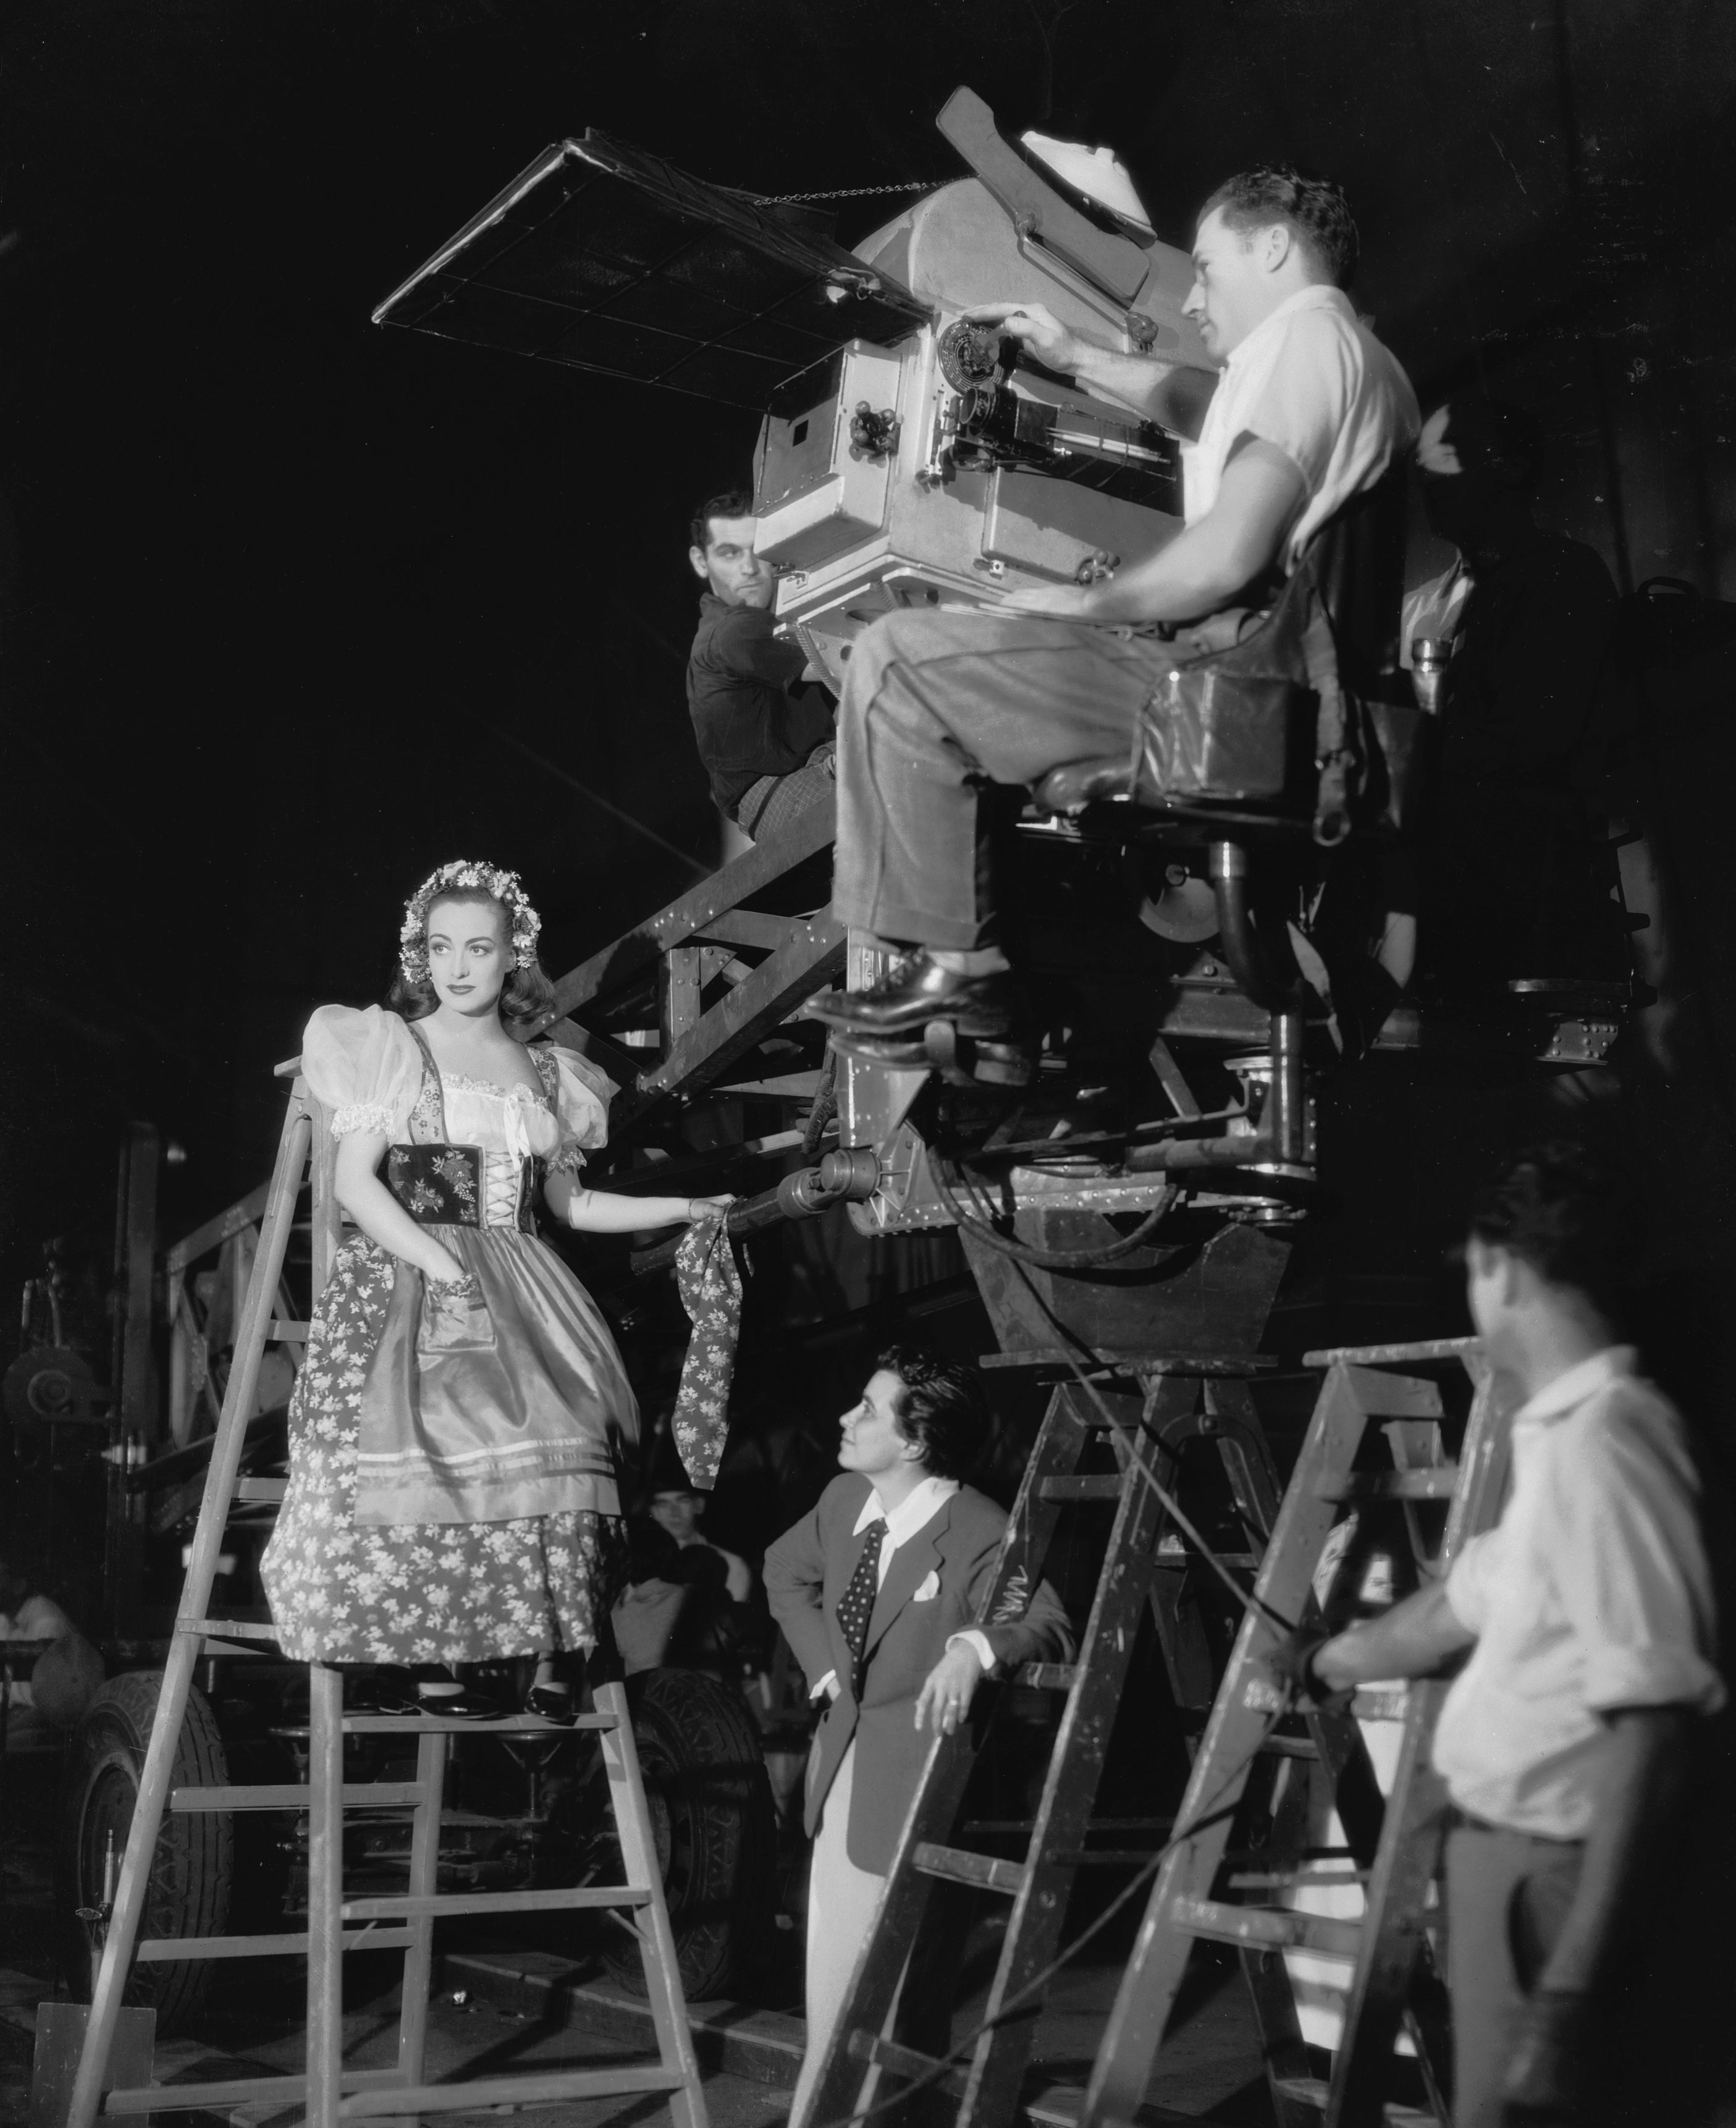 Director Dorothy Arzner on the set of The Bride Wore Red, 1937